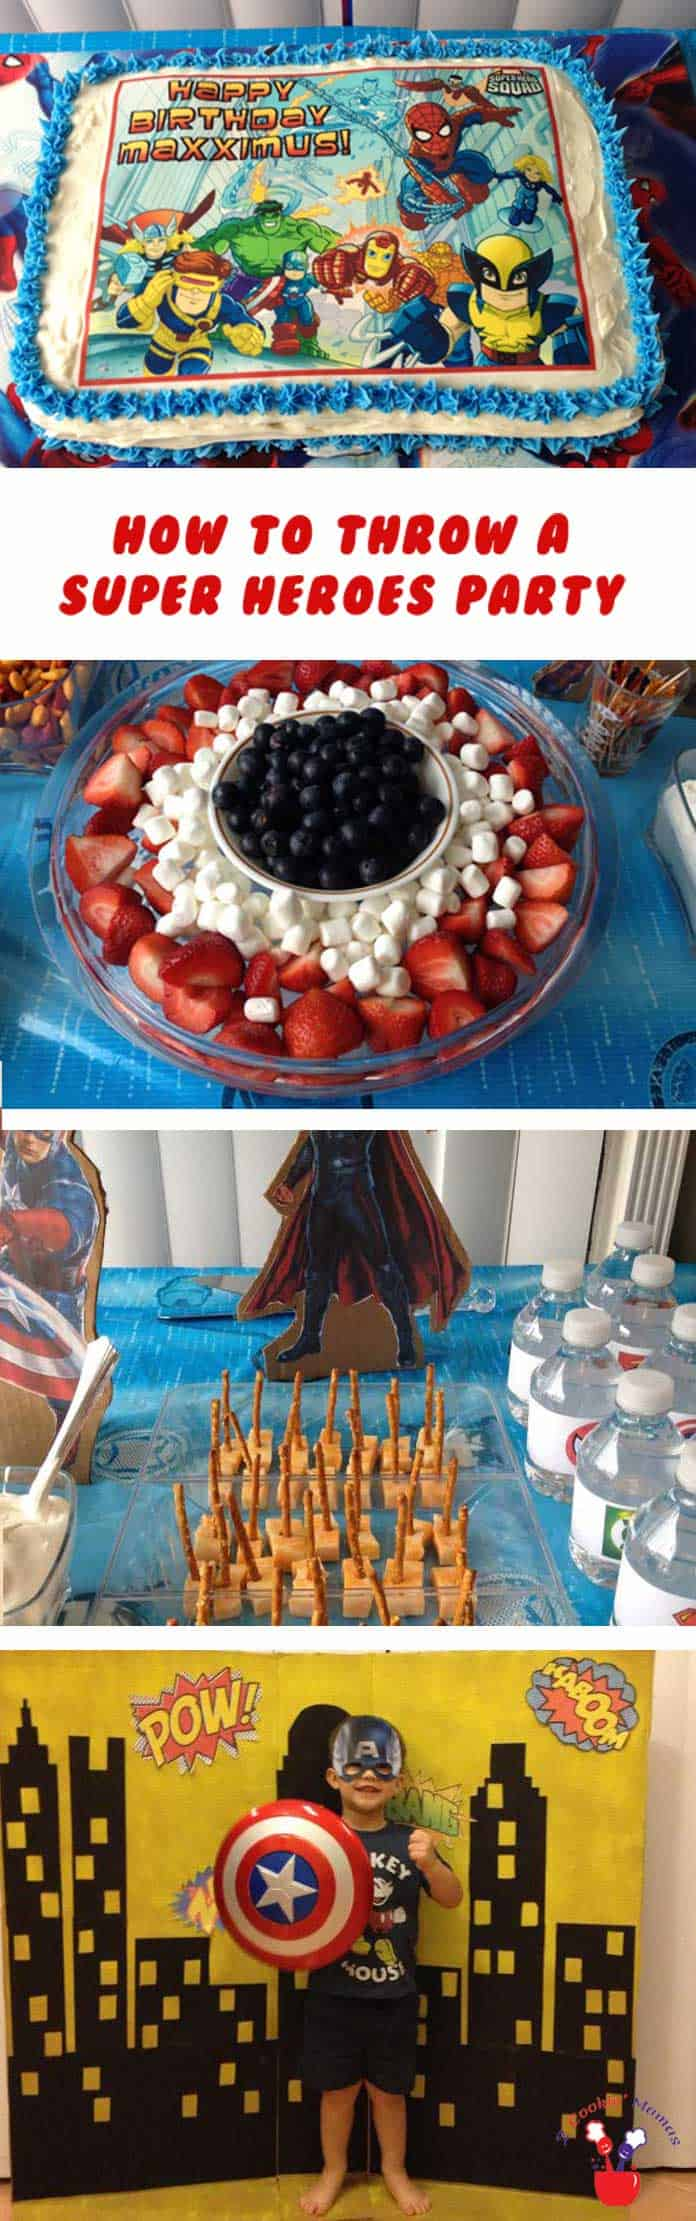 Superhero Birthday Party main | 2 Cookin Mamas Every little boy & girl love wants a Superhero Birthday Party! We've got the ideas, snacks & tie-dyed cake to make it the best party ever! #kidsparty #recipes